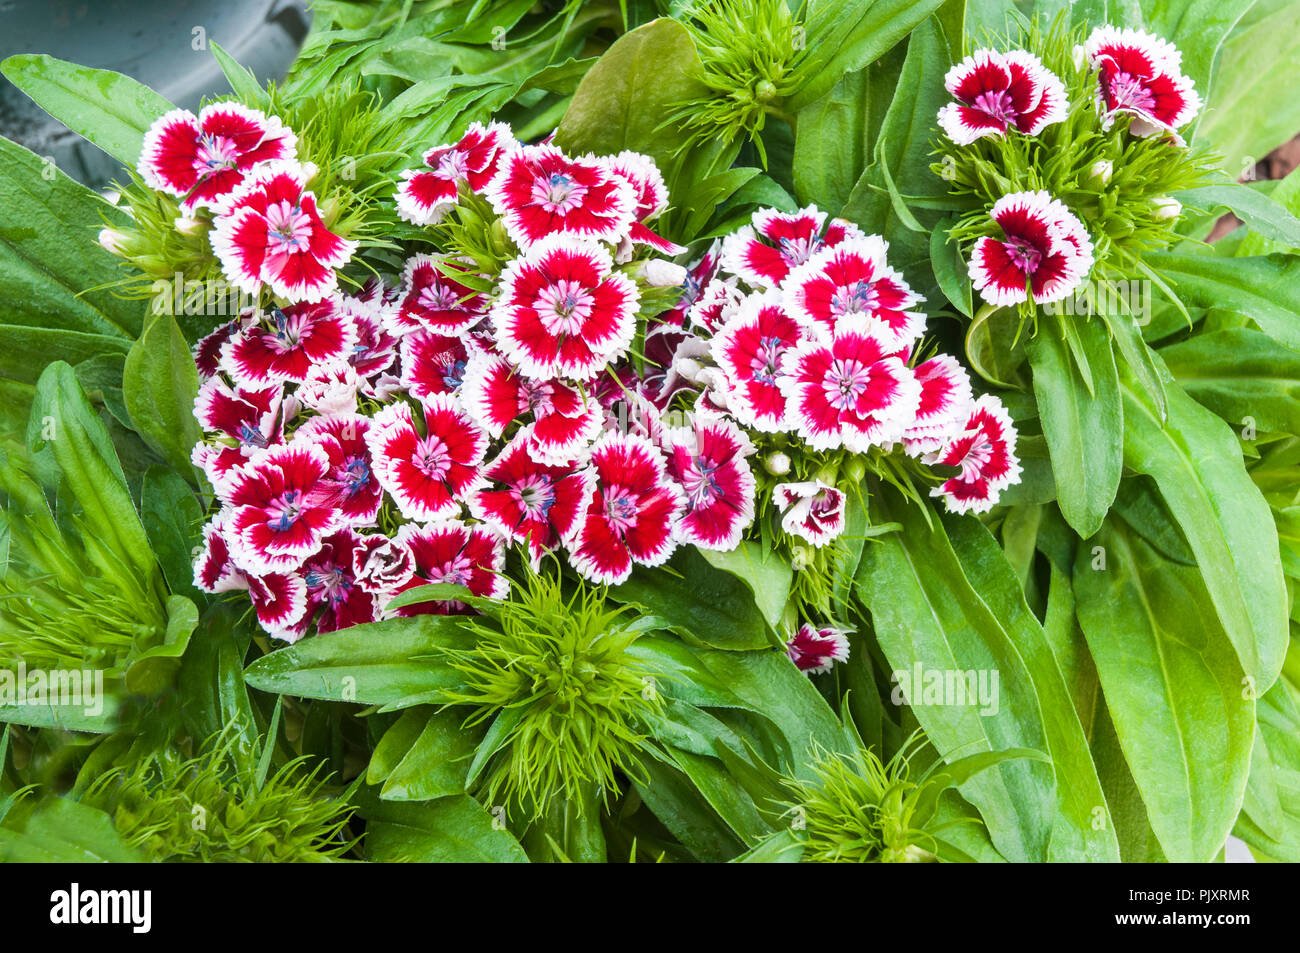 Dianthus Barbarini F1 Red Picotee with green leaf background. Common name Sweet William. - Stock Image